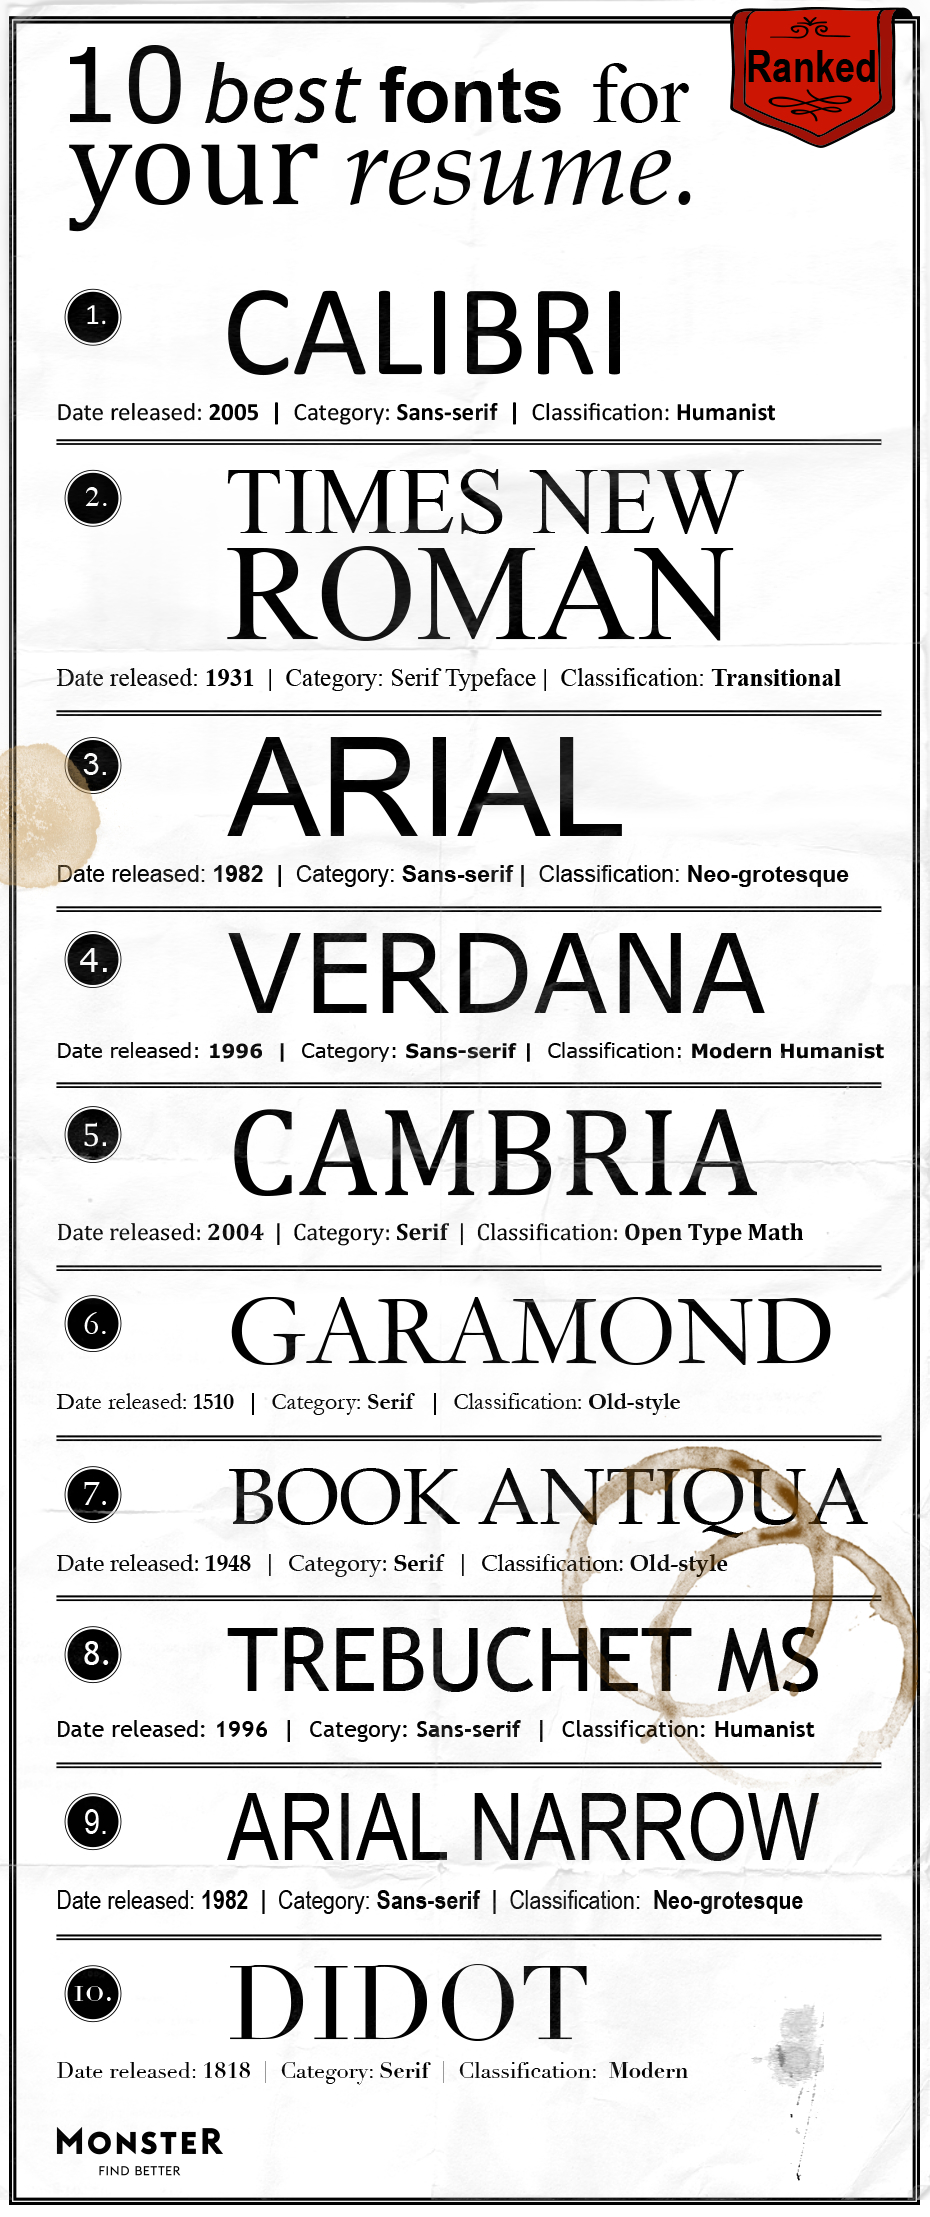 Best Fonts for Your Resume | Monster com